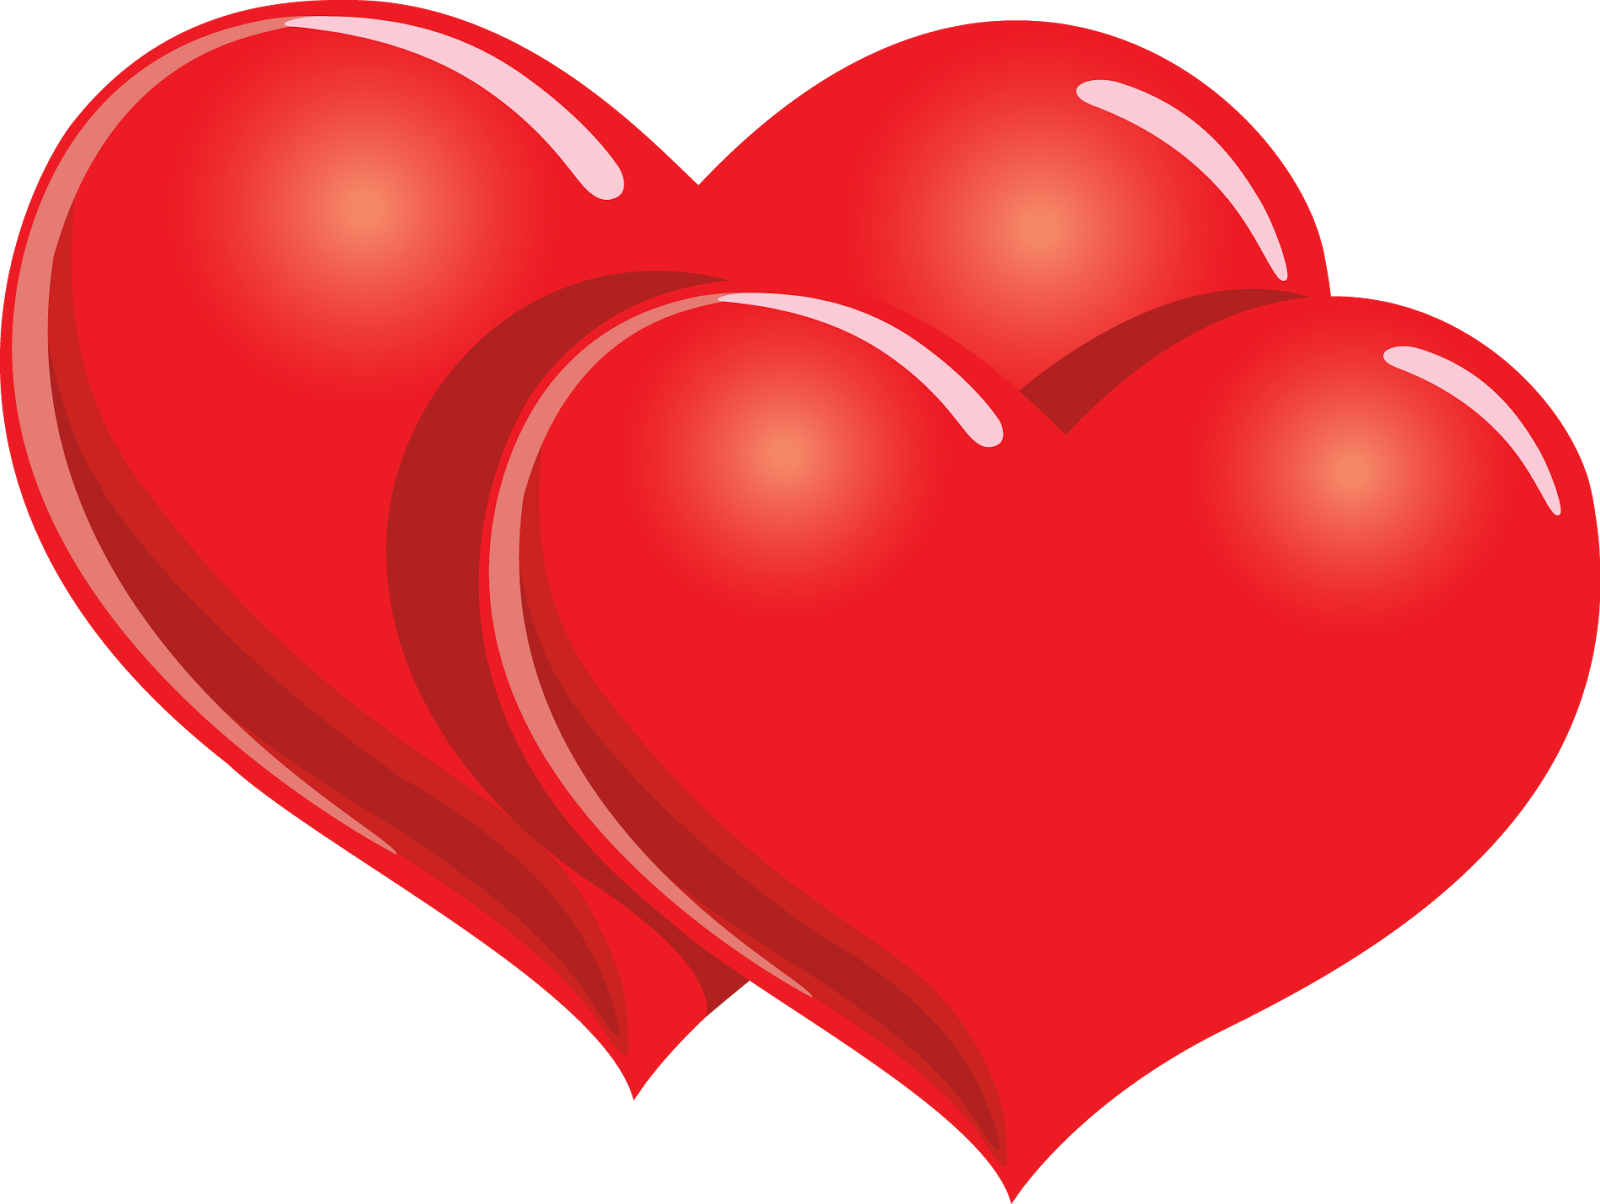 Best Free Valentine Png Image image #31079